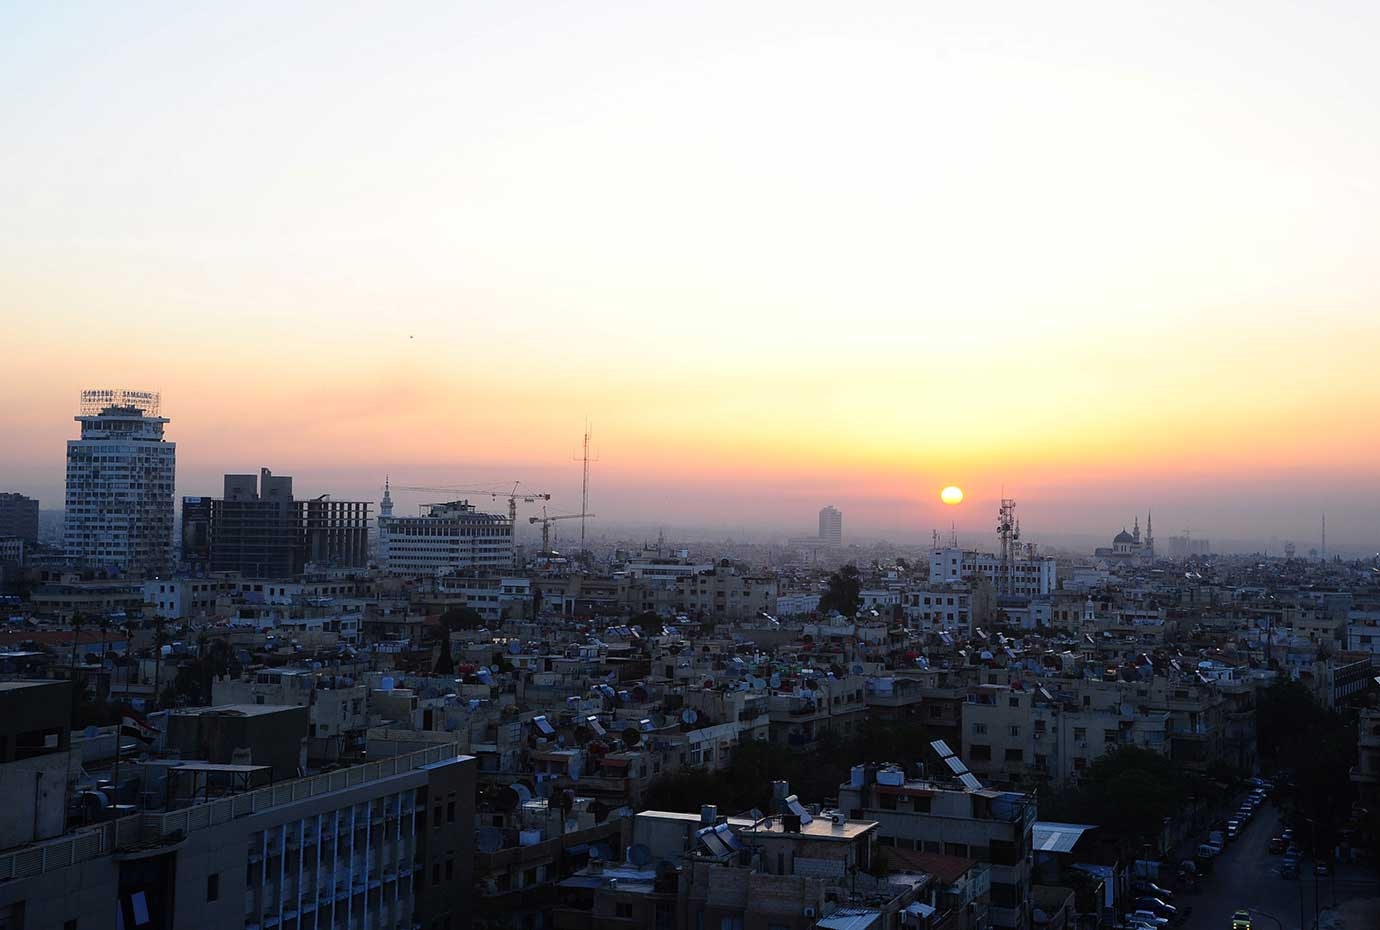 A general view of Damascus city during sunrise, Syria April 14, 2018. This image has been supplied b